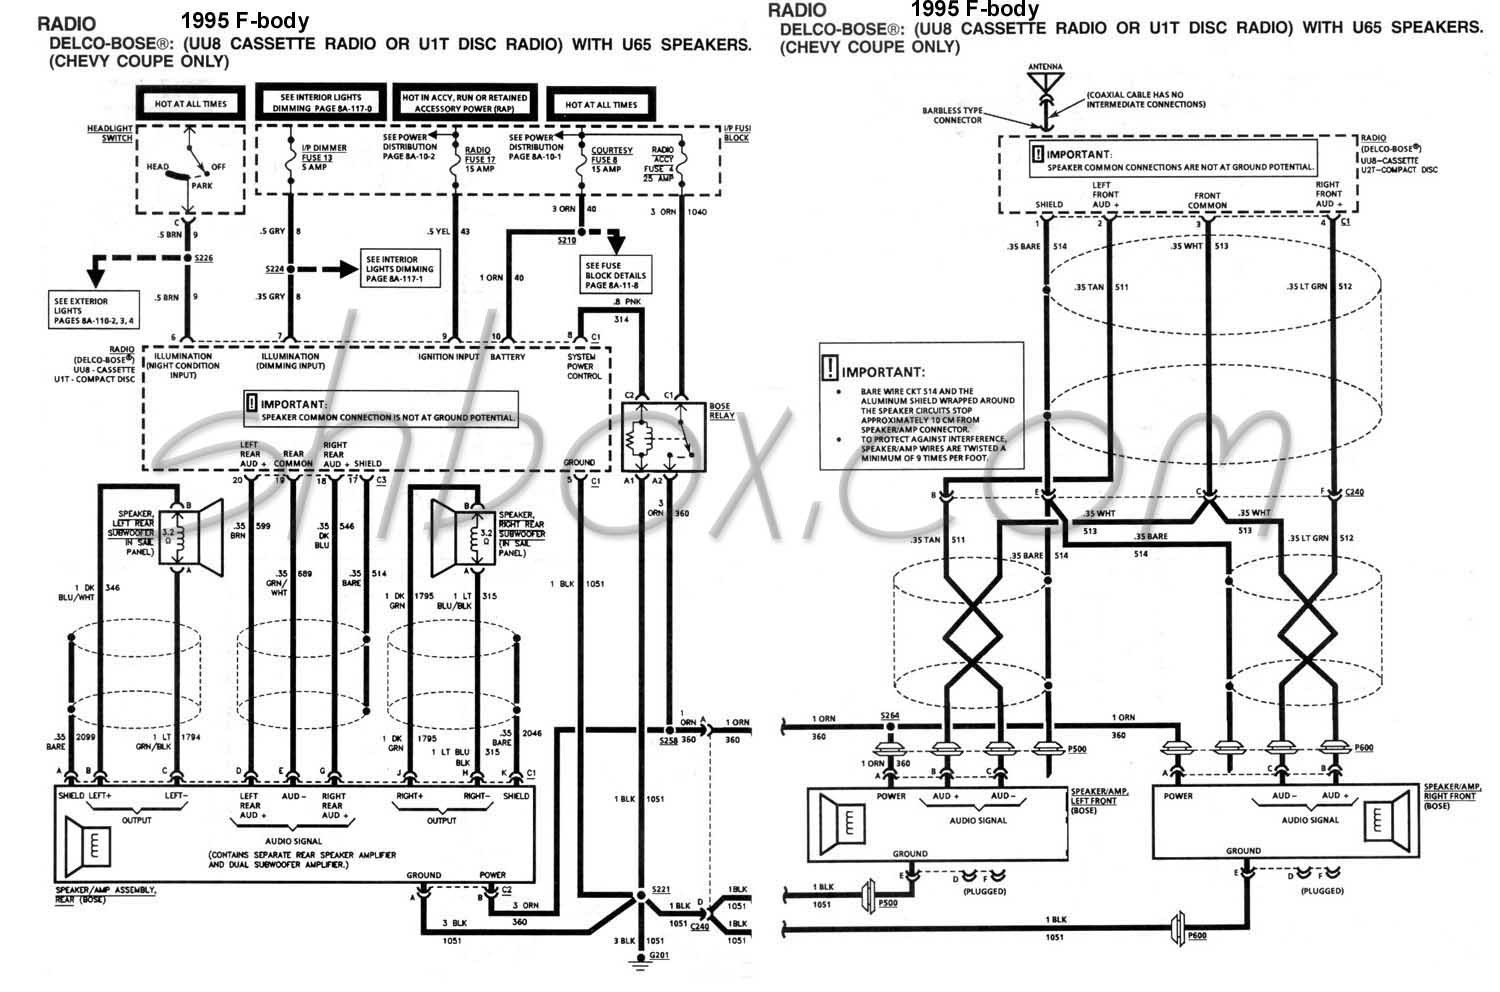 hight resolution of 4th gen lt1 f body tech aidsbose schematic 1995 camaro